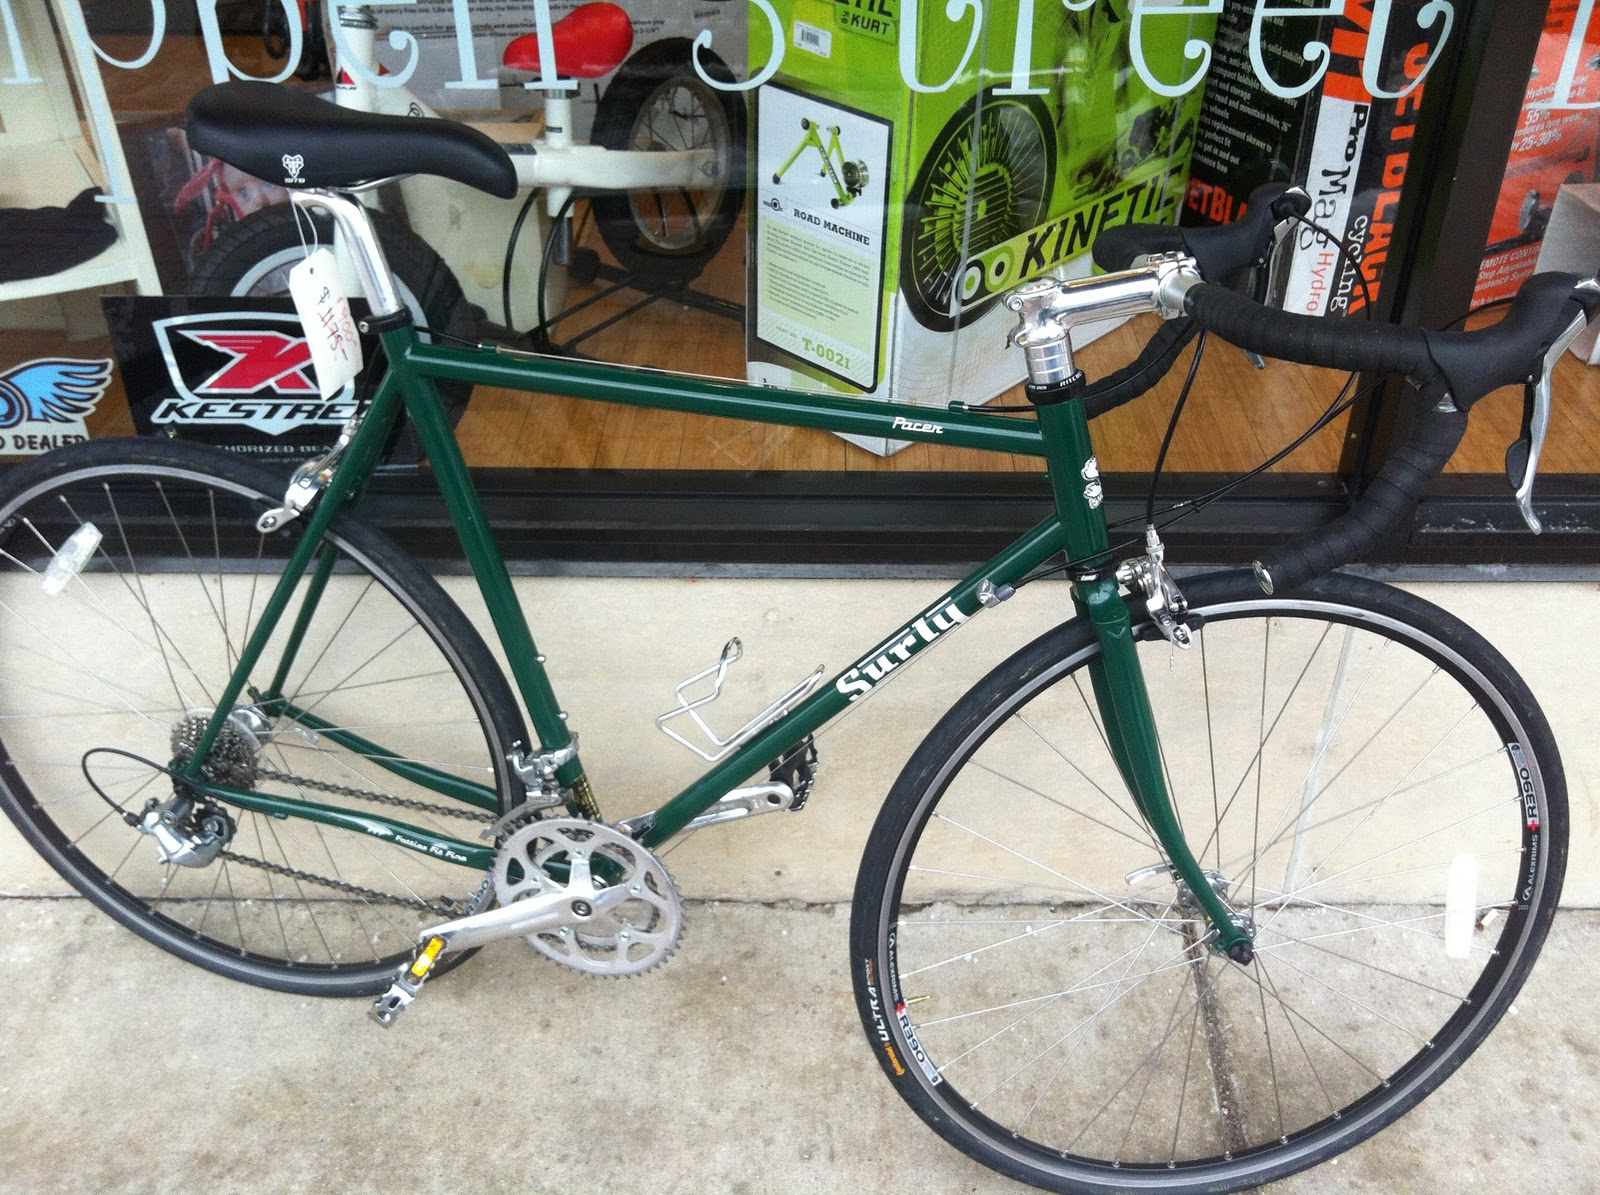 Campbell Street Bicycle Shop: 2011 Surly Pacer 56cm Demo model for sale